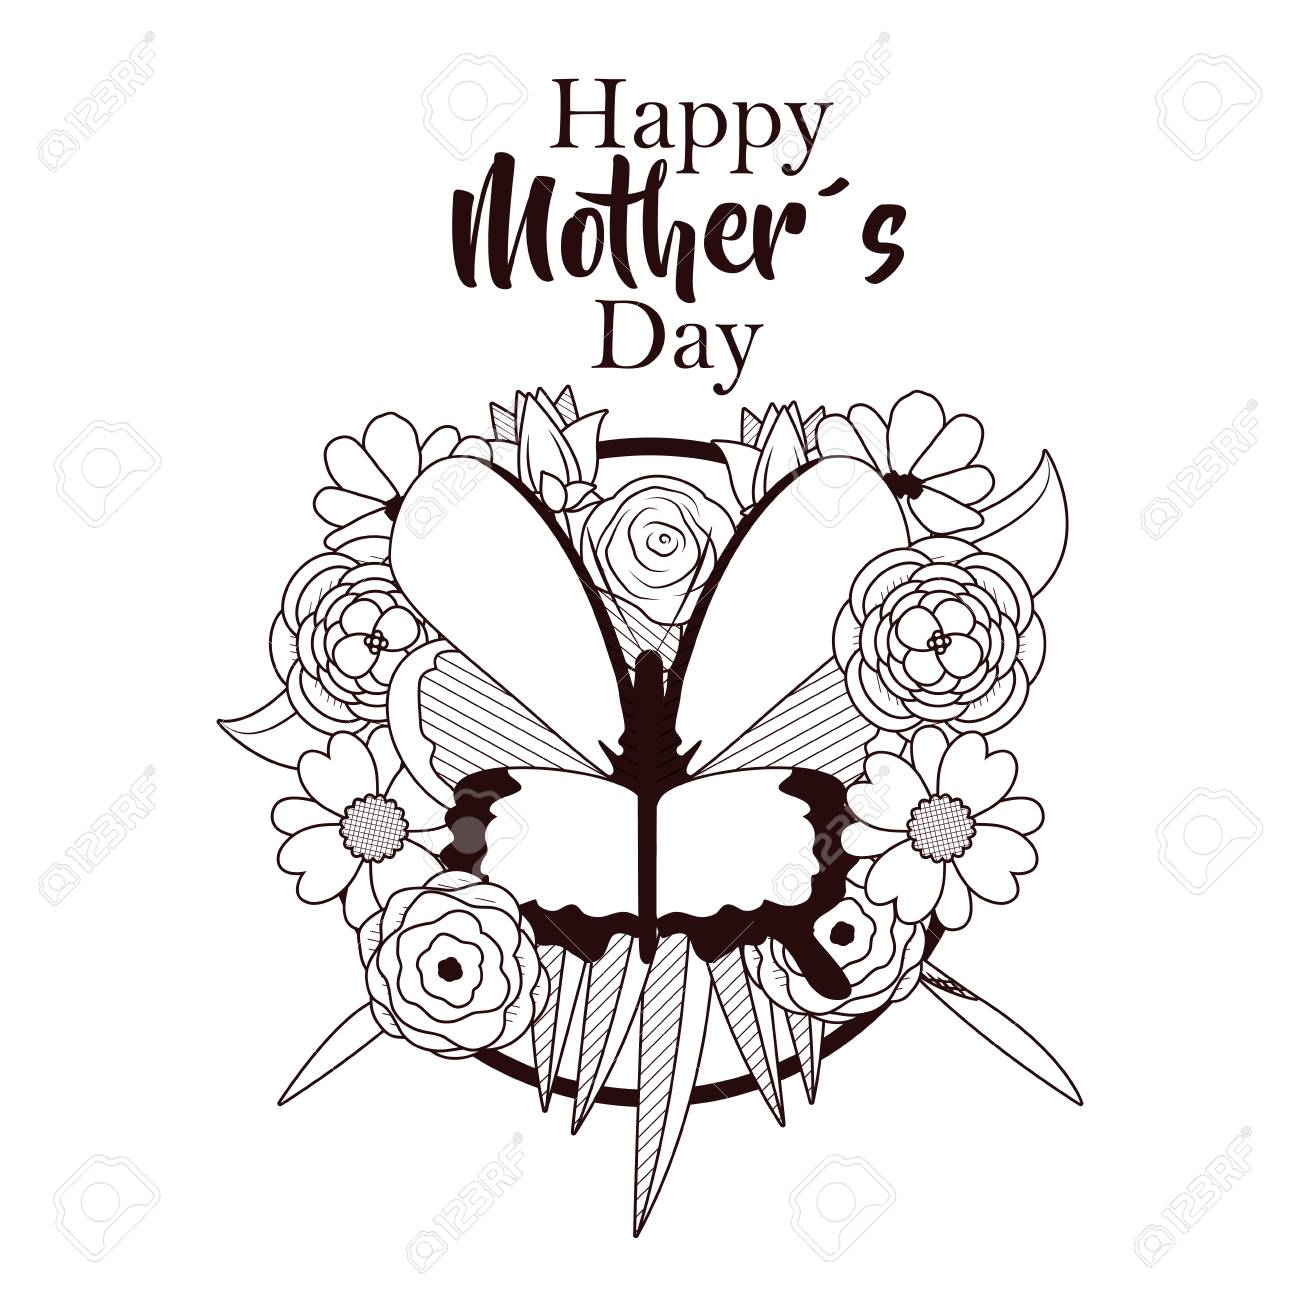 Happy mothers day card with beautiful butterflies and flowers happy mothers day card with beautiful butterflies and flowers on black and white design stock vector mightylinksfo